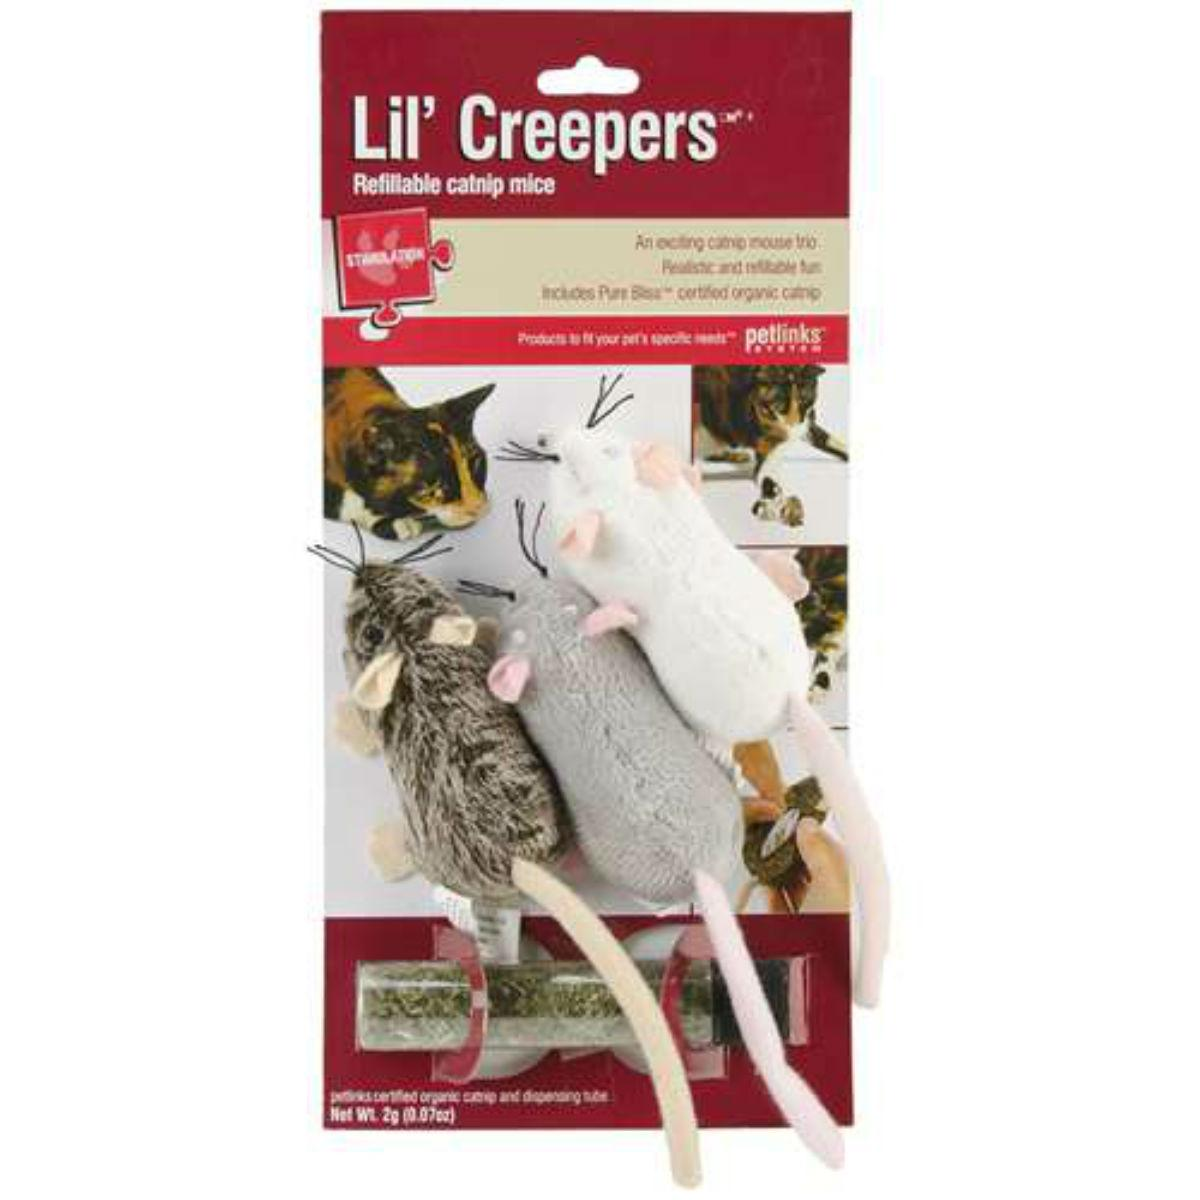 Petlinks Refillable Lil Creepers Cat Toy